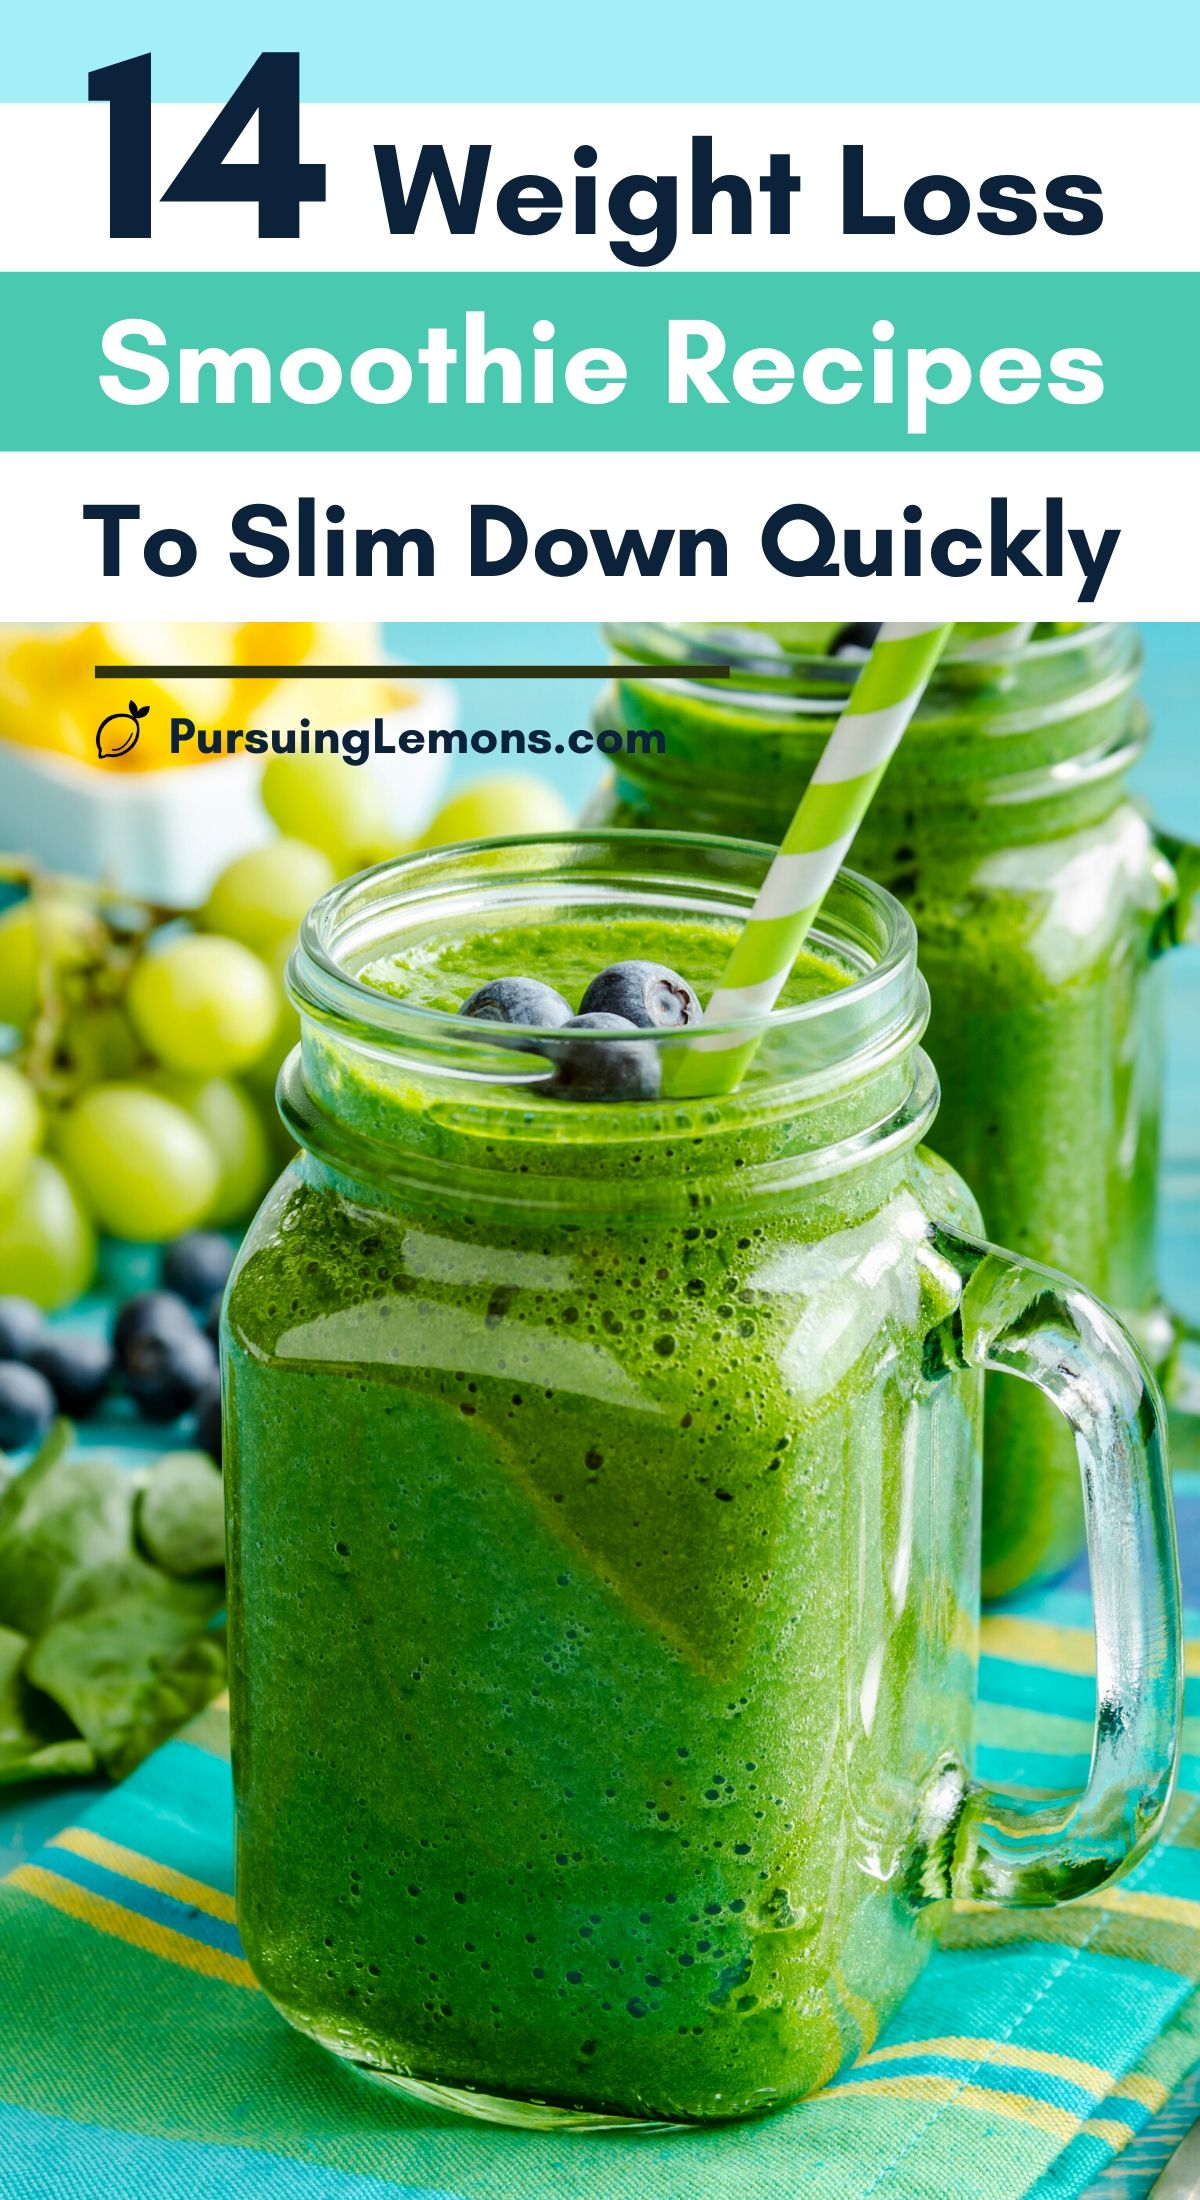 14 Weight Loss Smoothie Recipes To Slim Down Quickly | Looking for weight loss drinks? These delicious and healthy smoothies for weight loss can help you to lose weight. #healthydrinks #weightlossdrinks #weightlosssmoothies